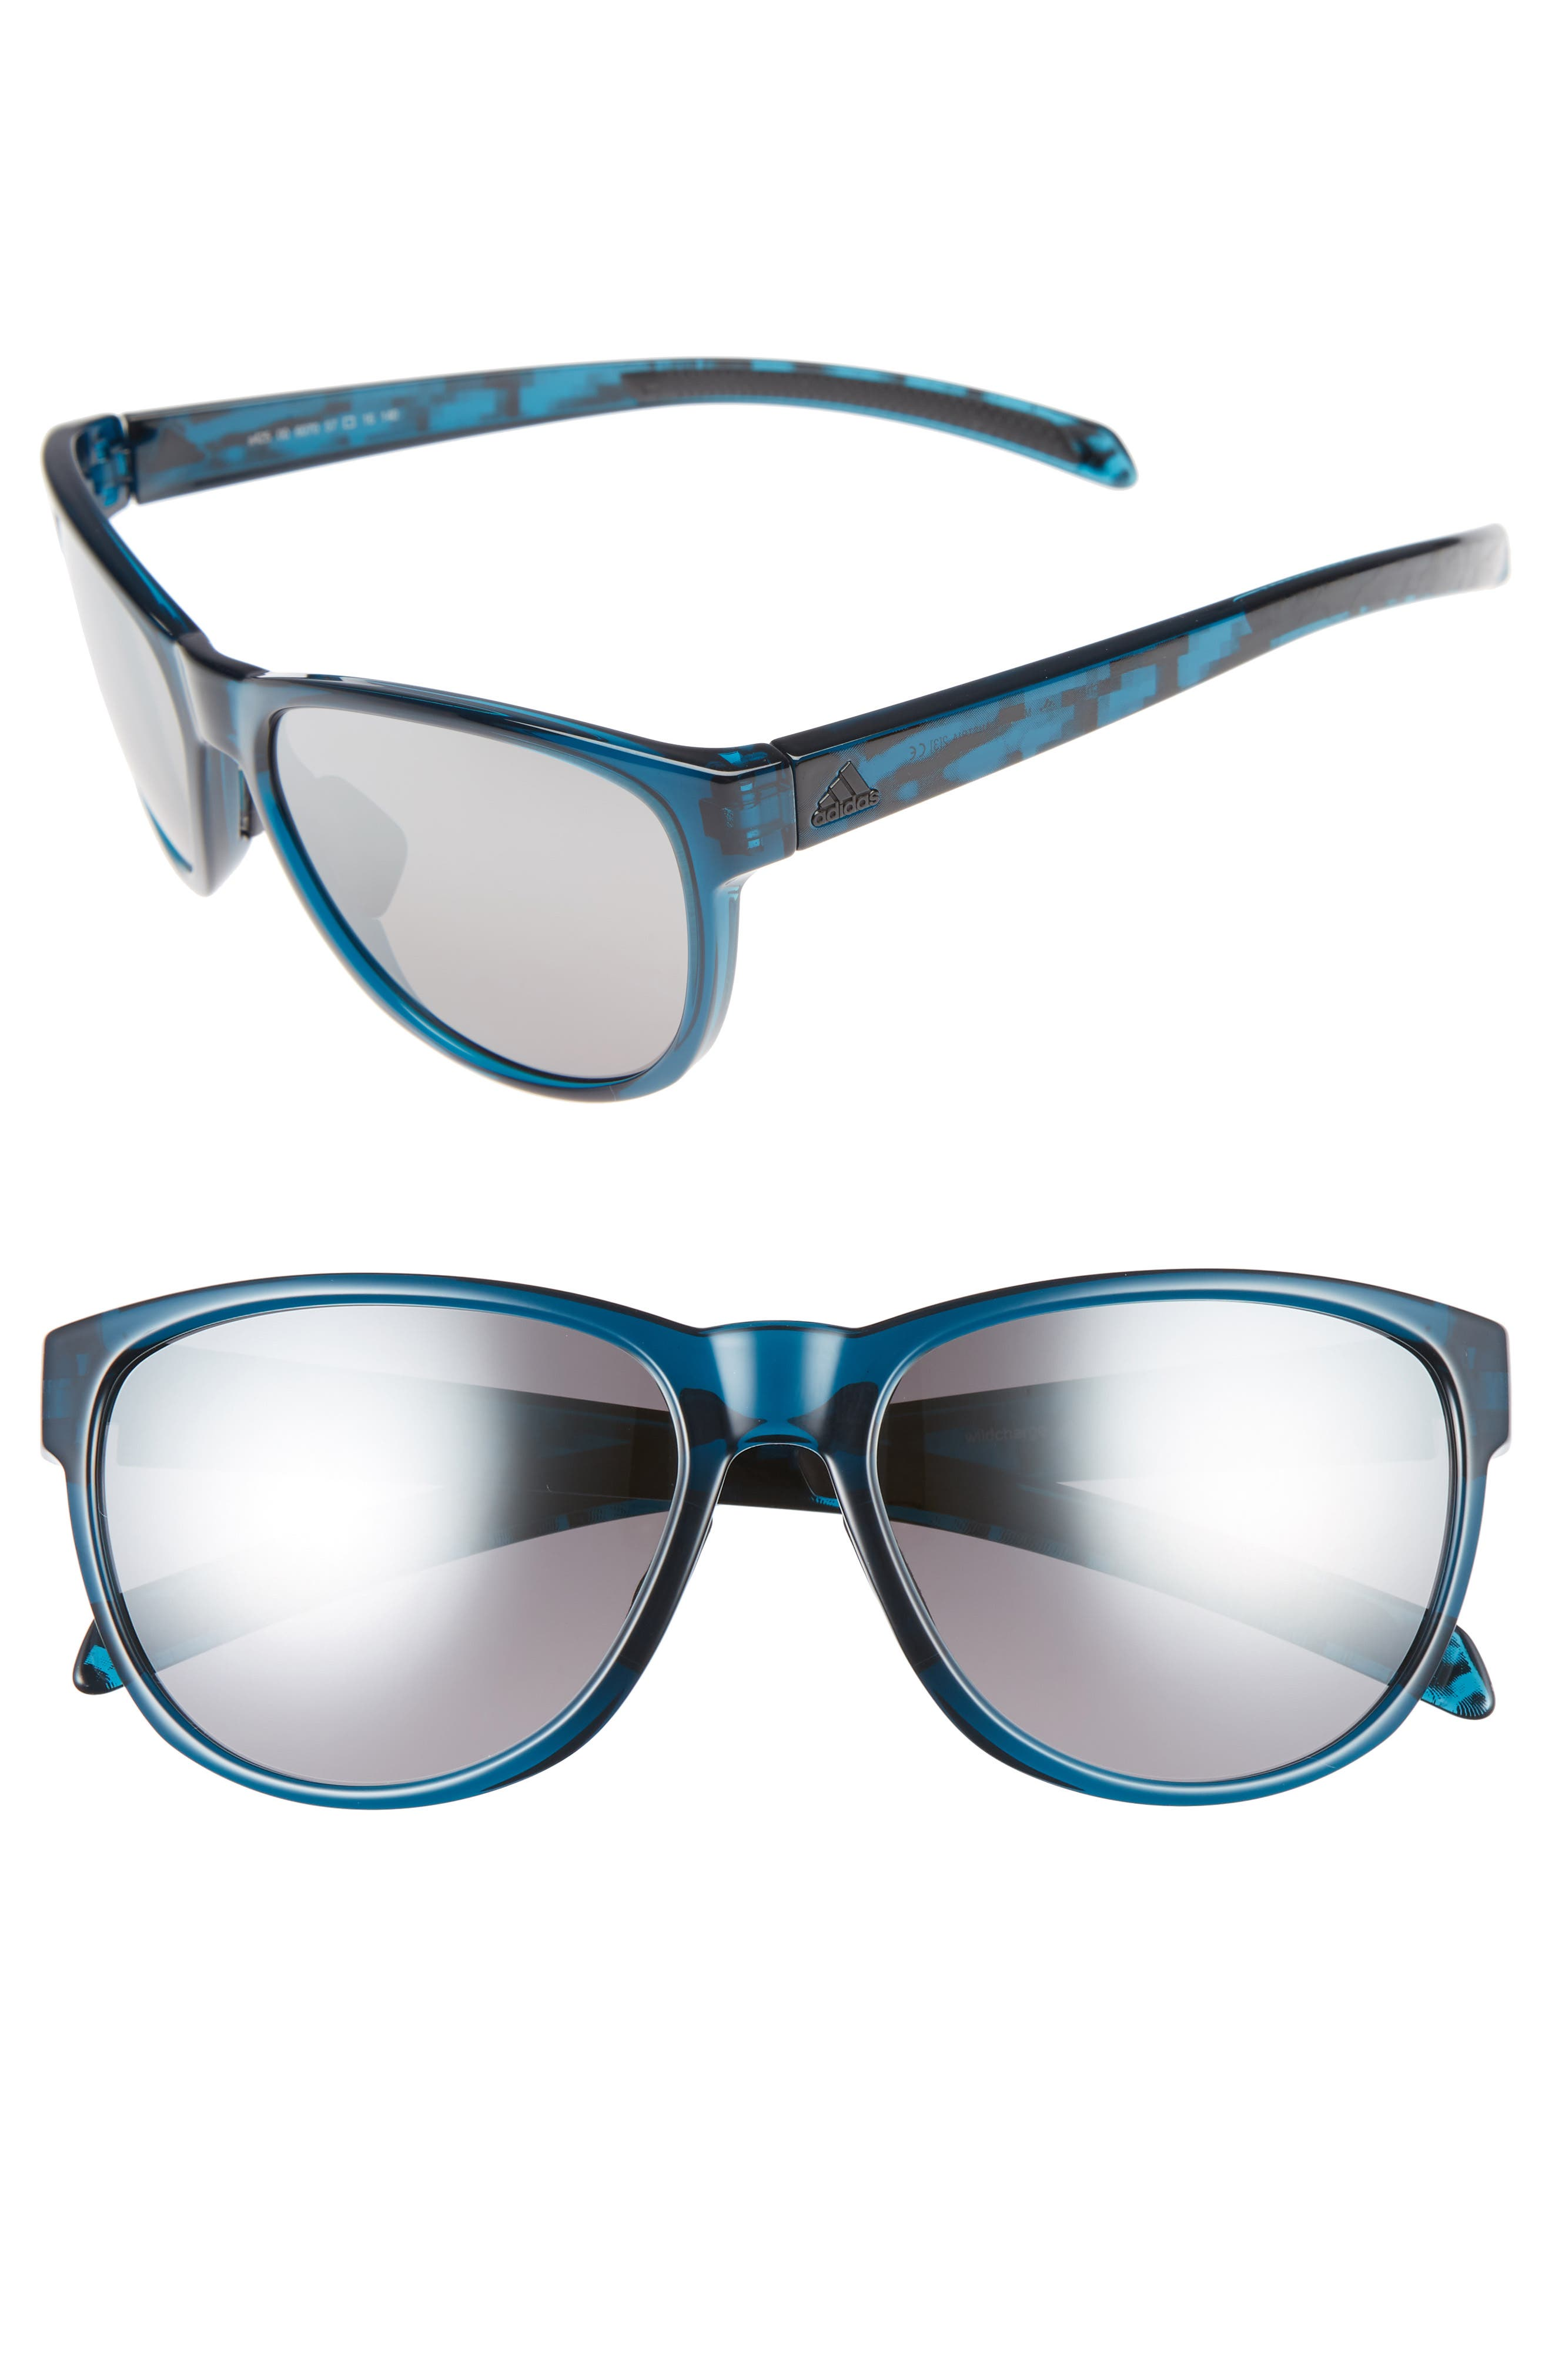 Wildcharge 61mm Mirrored Sunglasses,                         Main,                         color, Grey Blue/ Grey Mirror